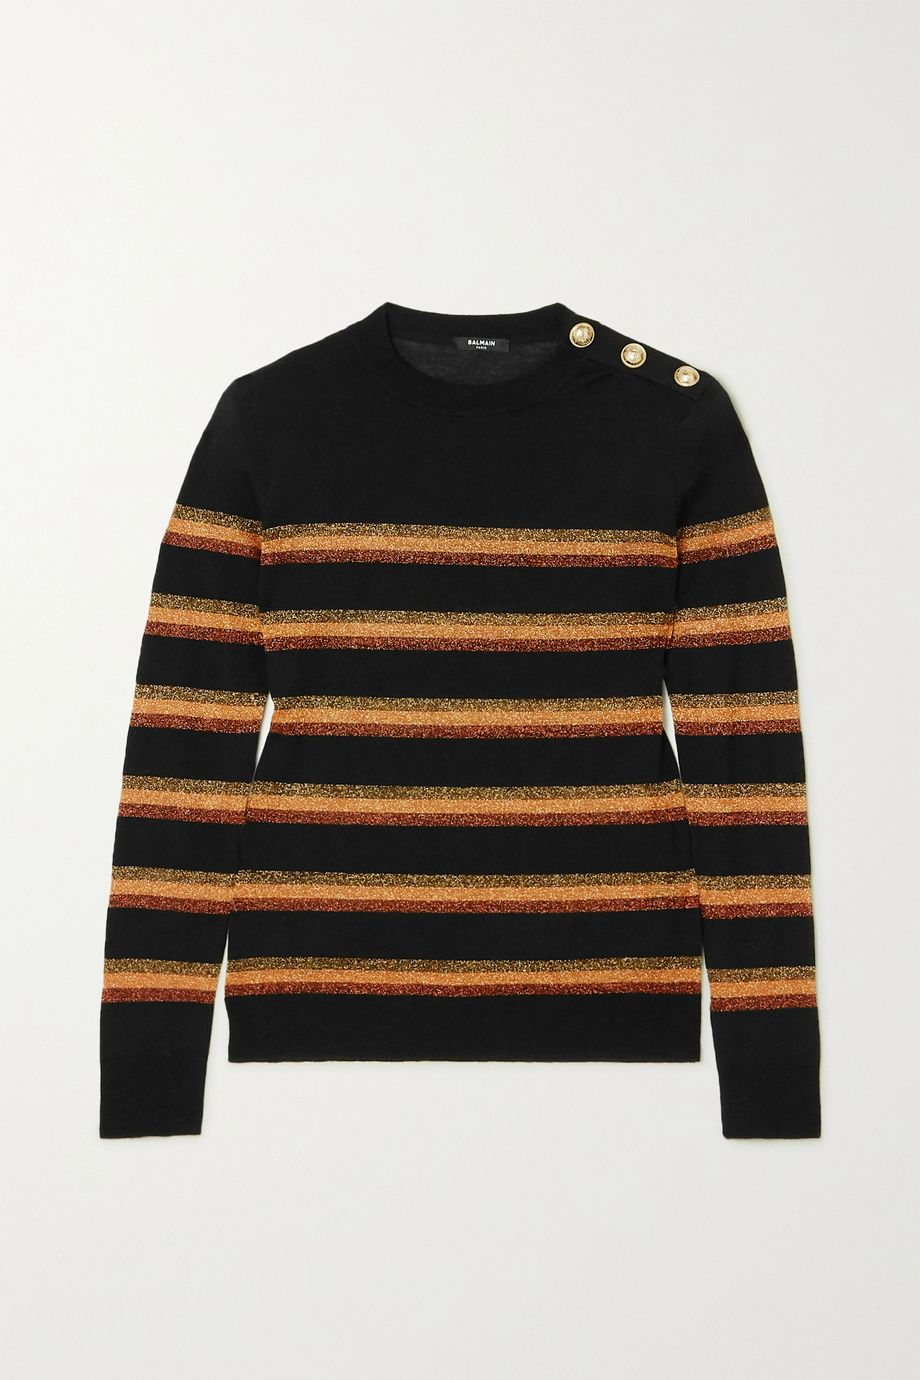 Balmain Button-embellished Lurex-trimmed wool sweater